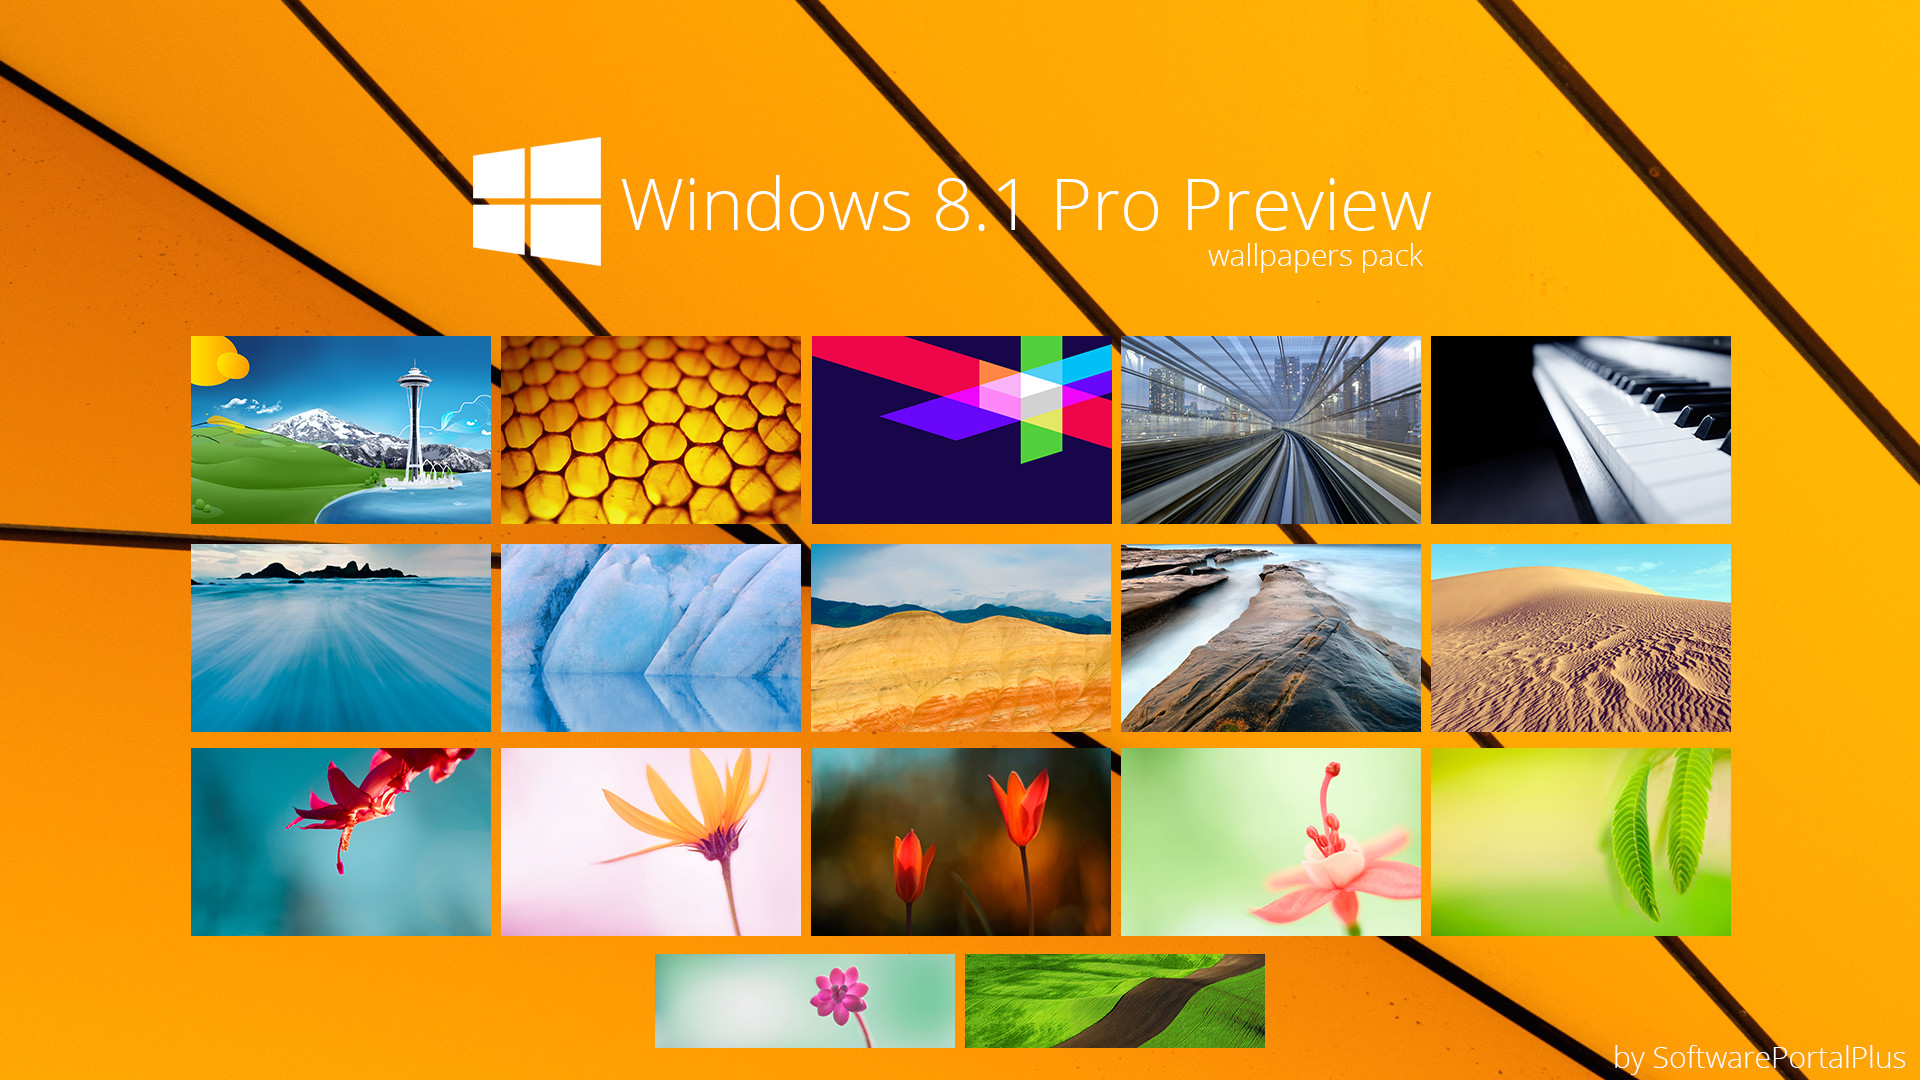 Hd clipart for windows 81